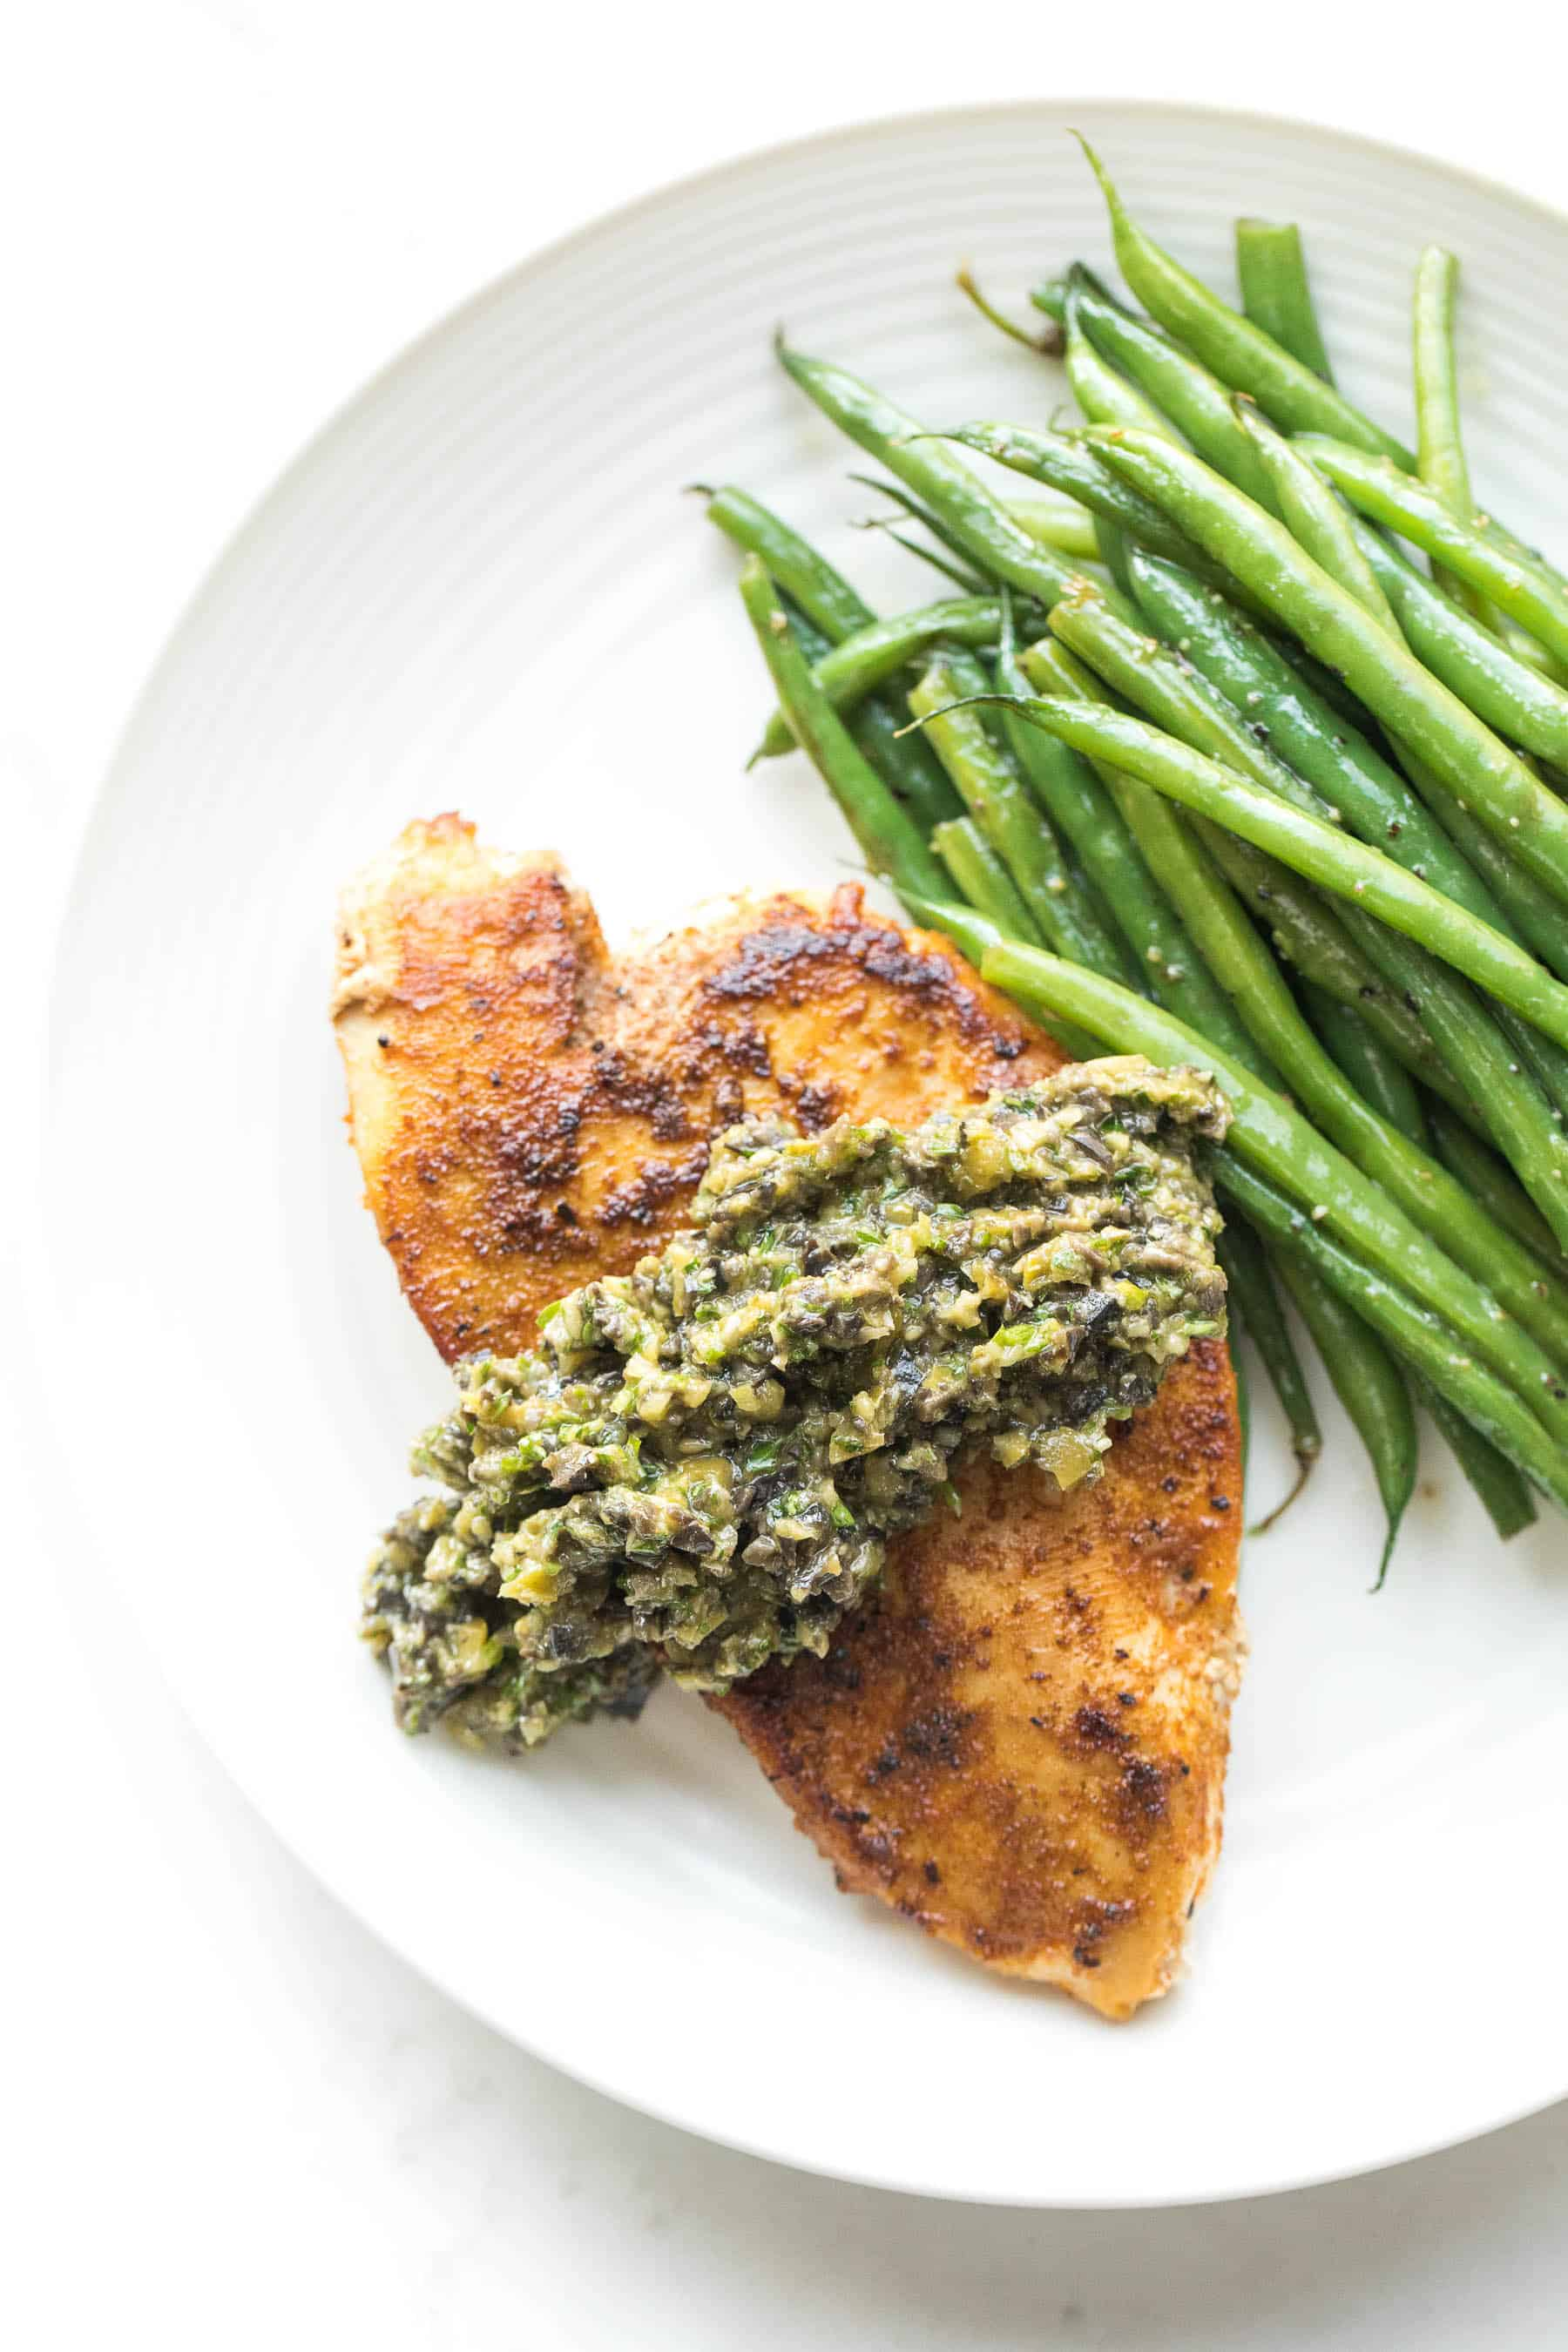 Chicken with olive tapenade and green beans on a white plate